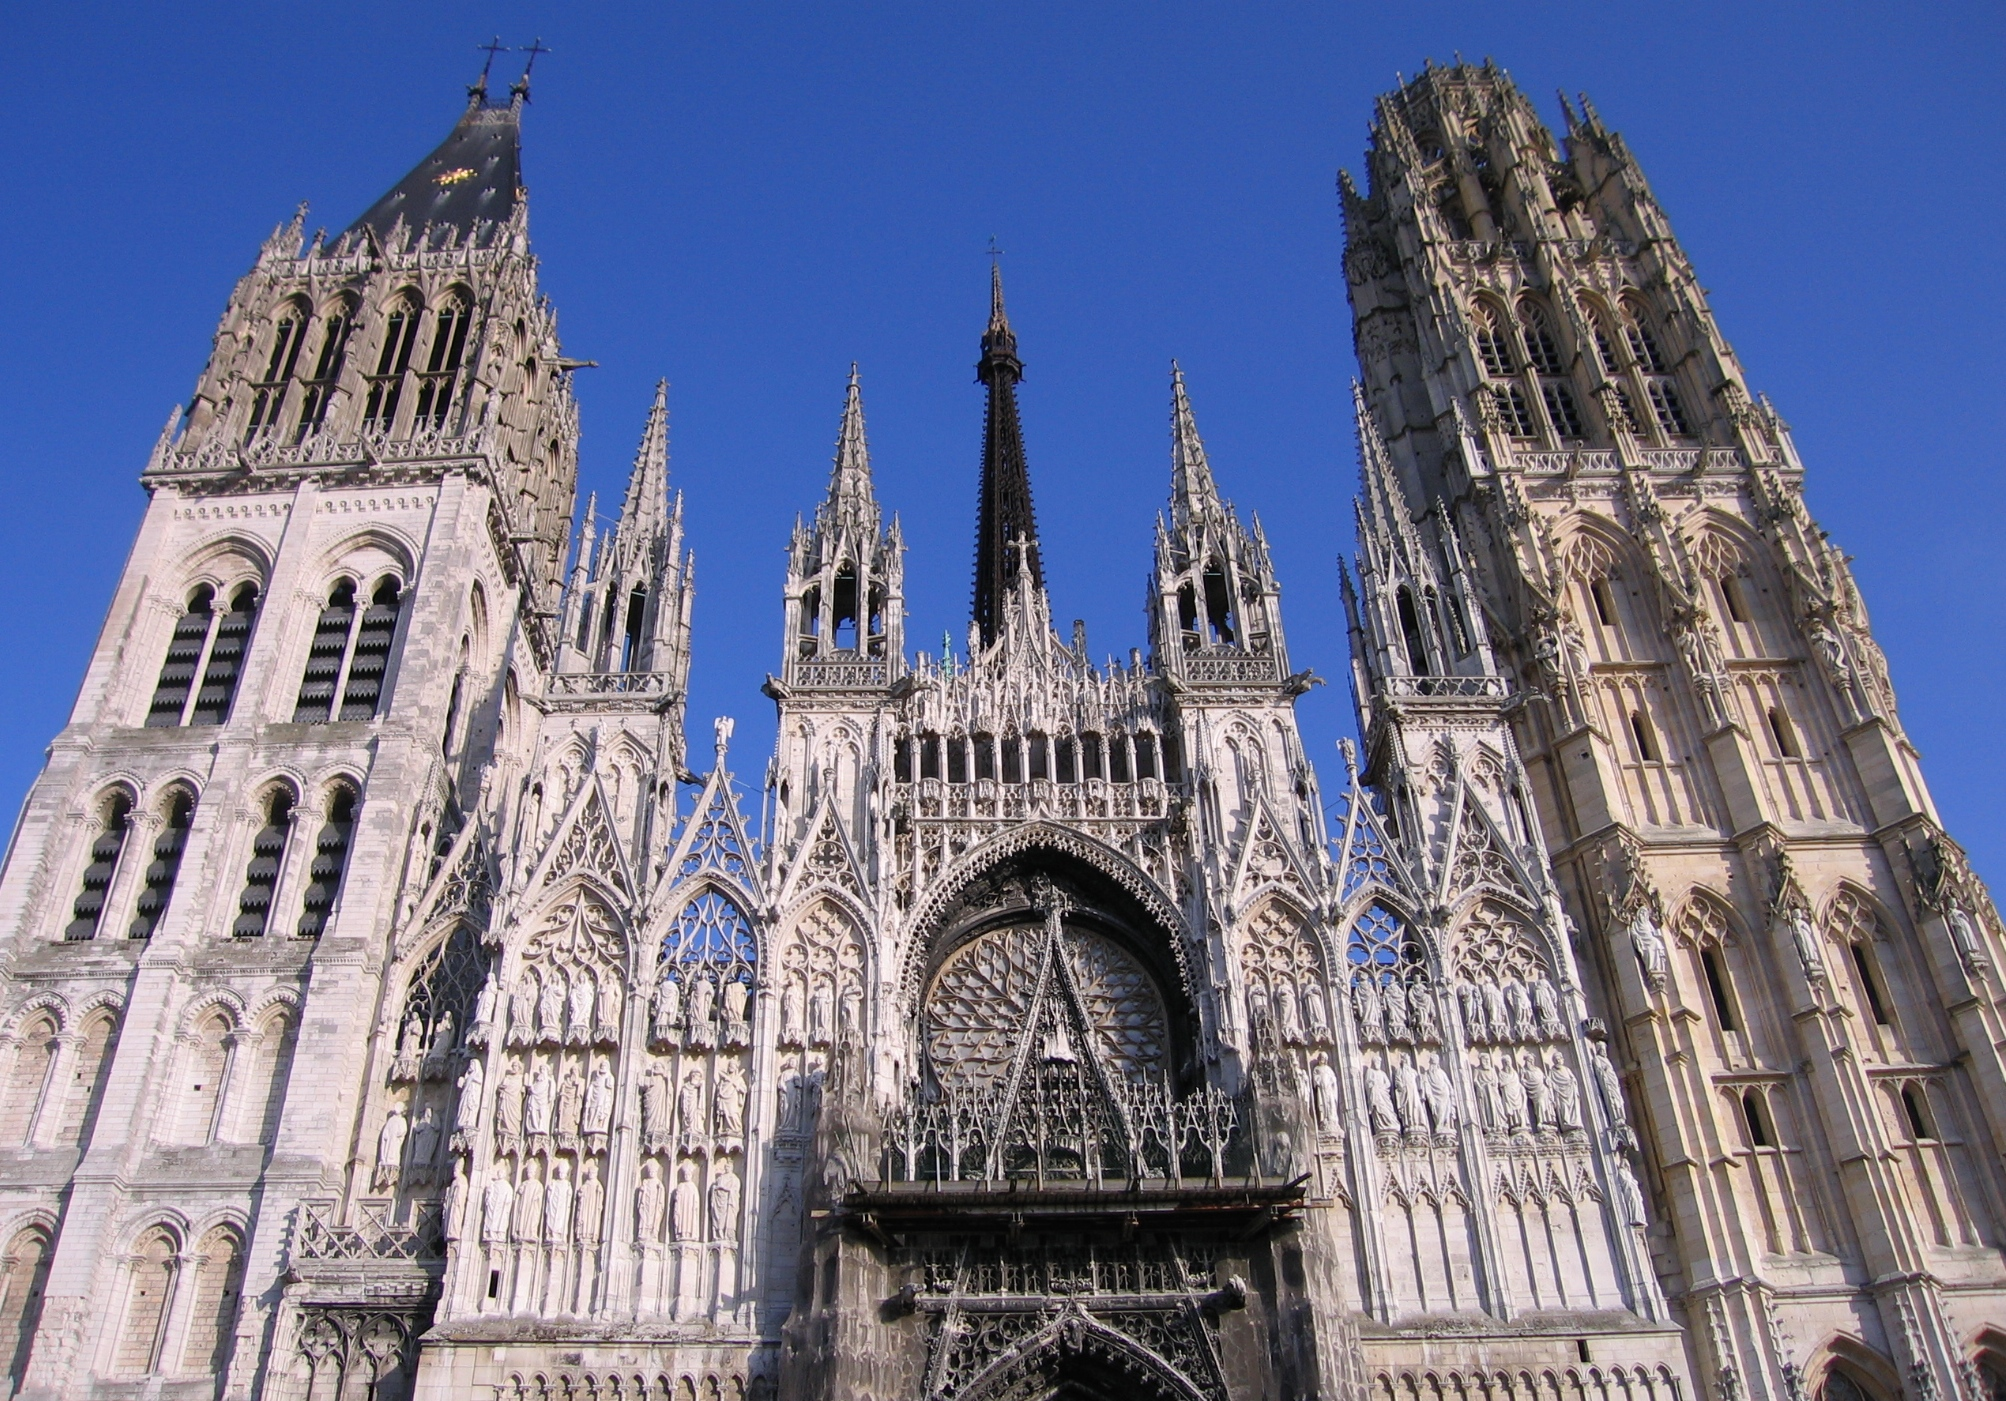 CathedralRouen.jpg